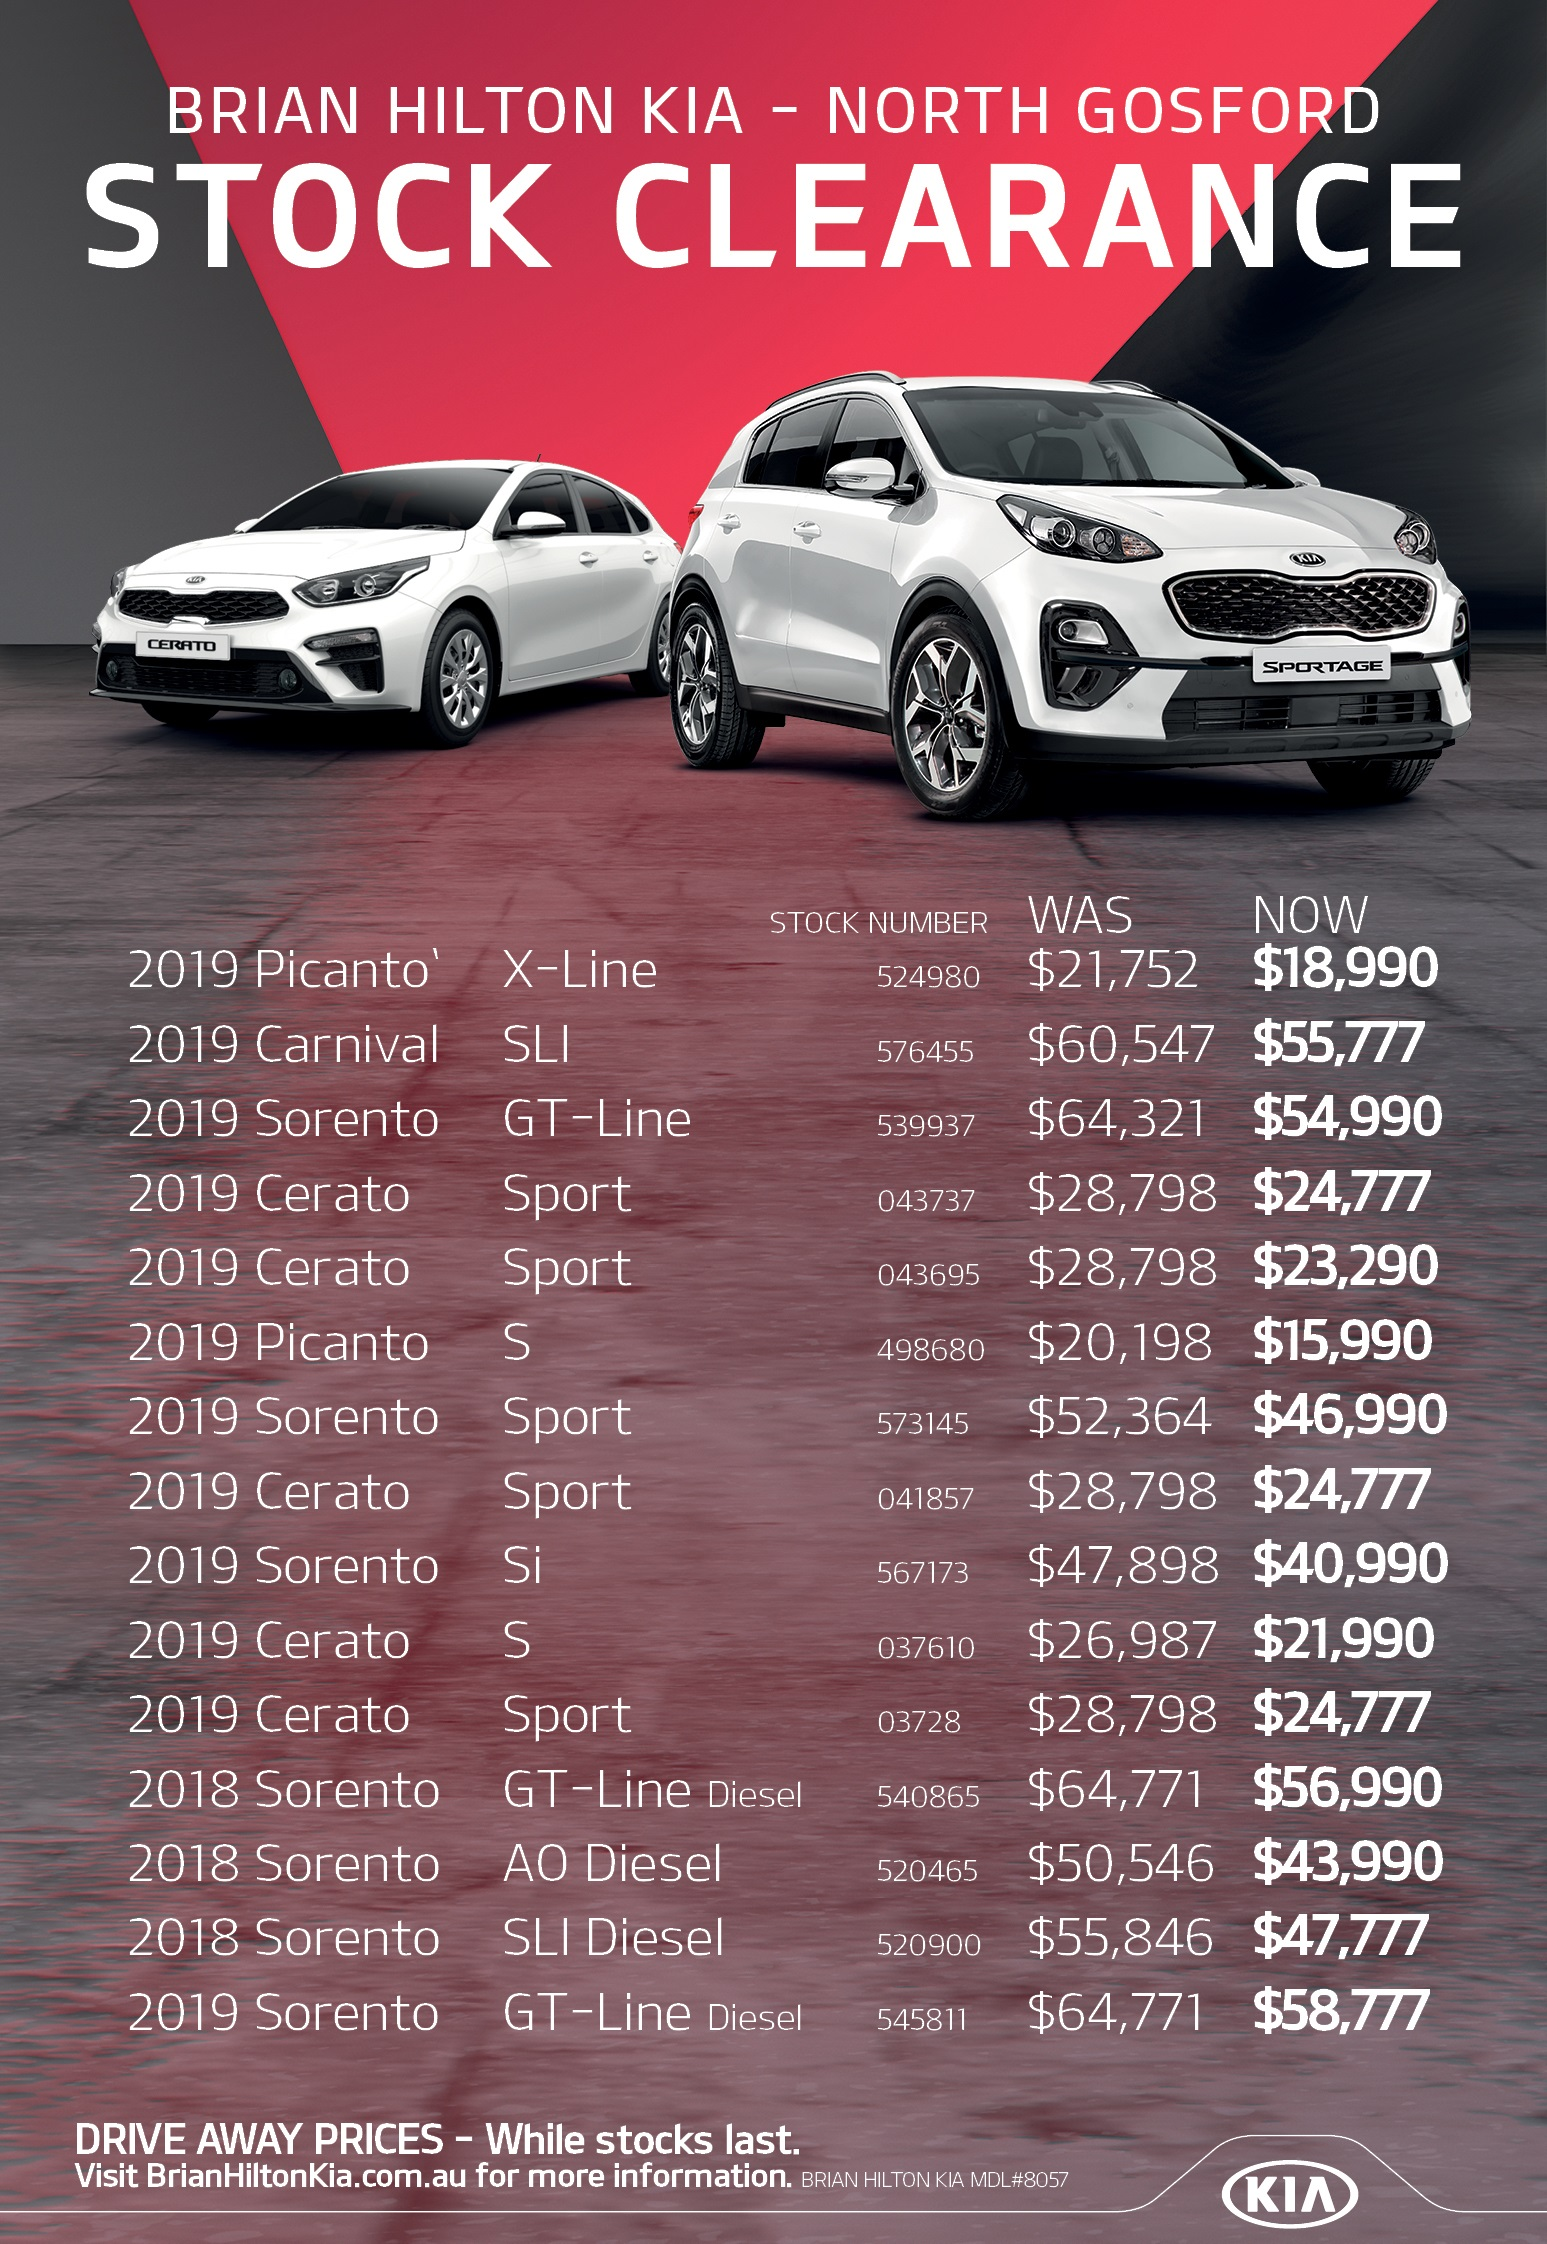 Brian Hilton Kia - North Gosford Stock Clearance